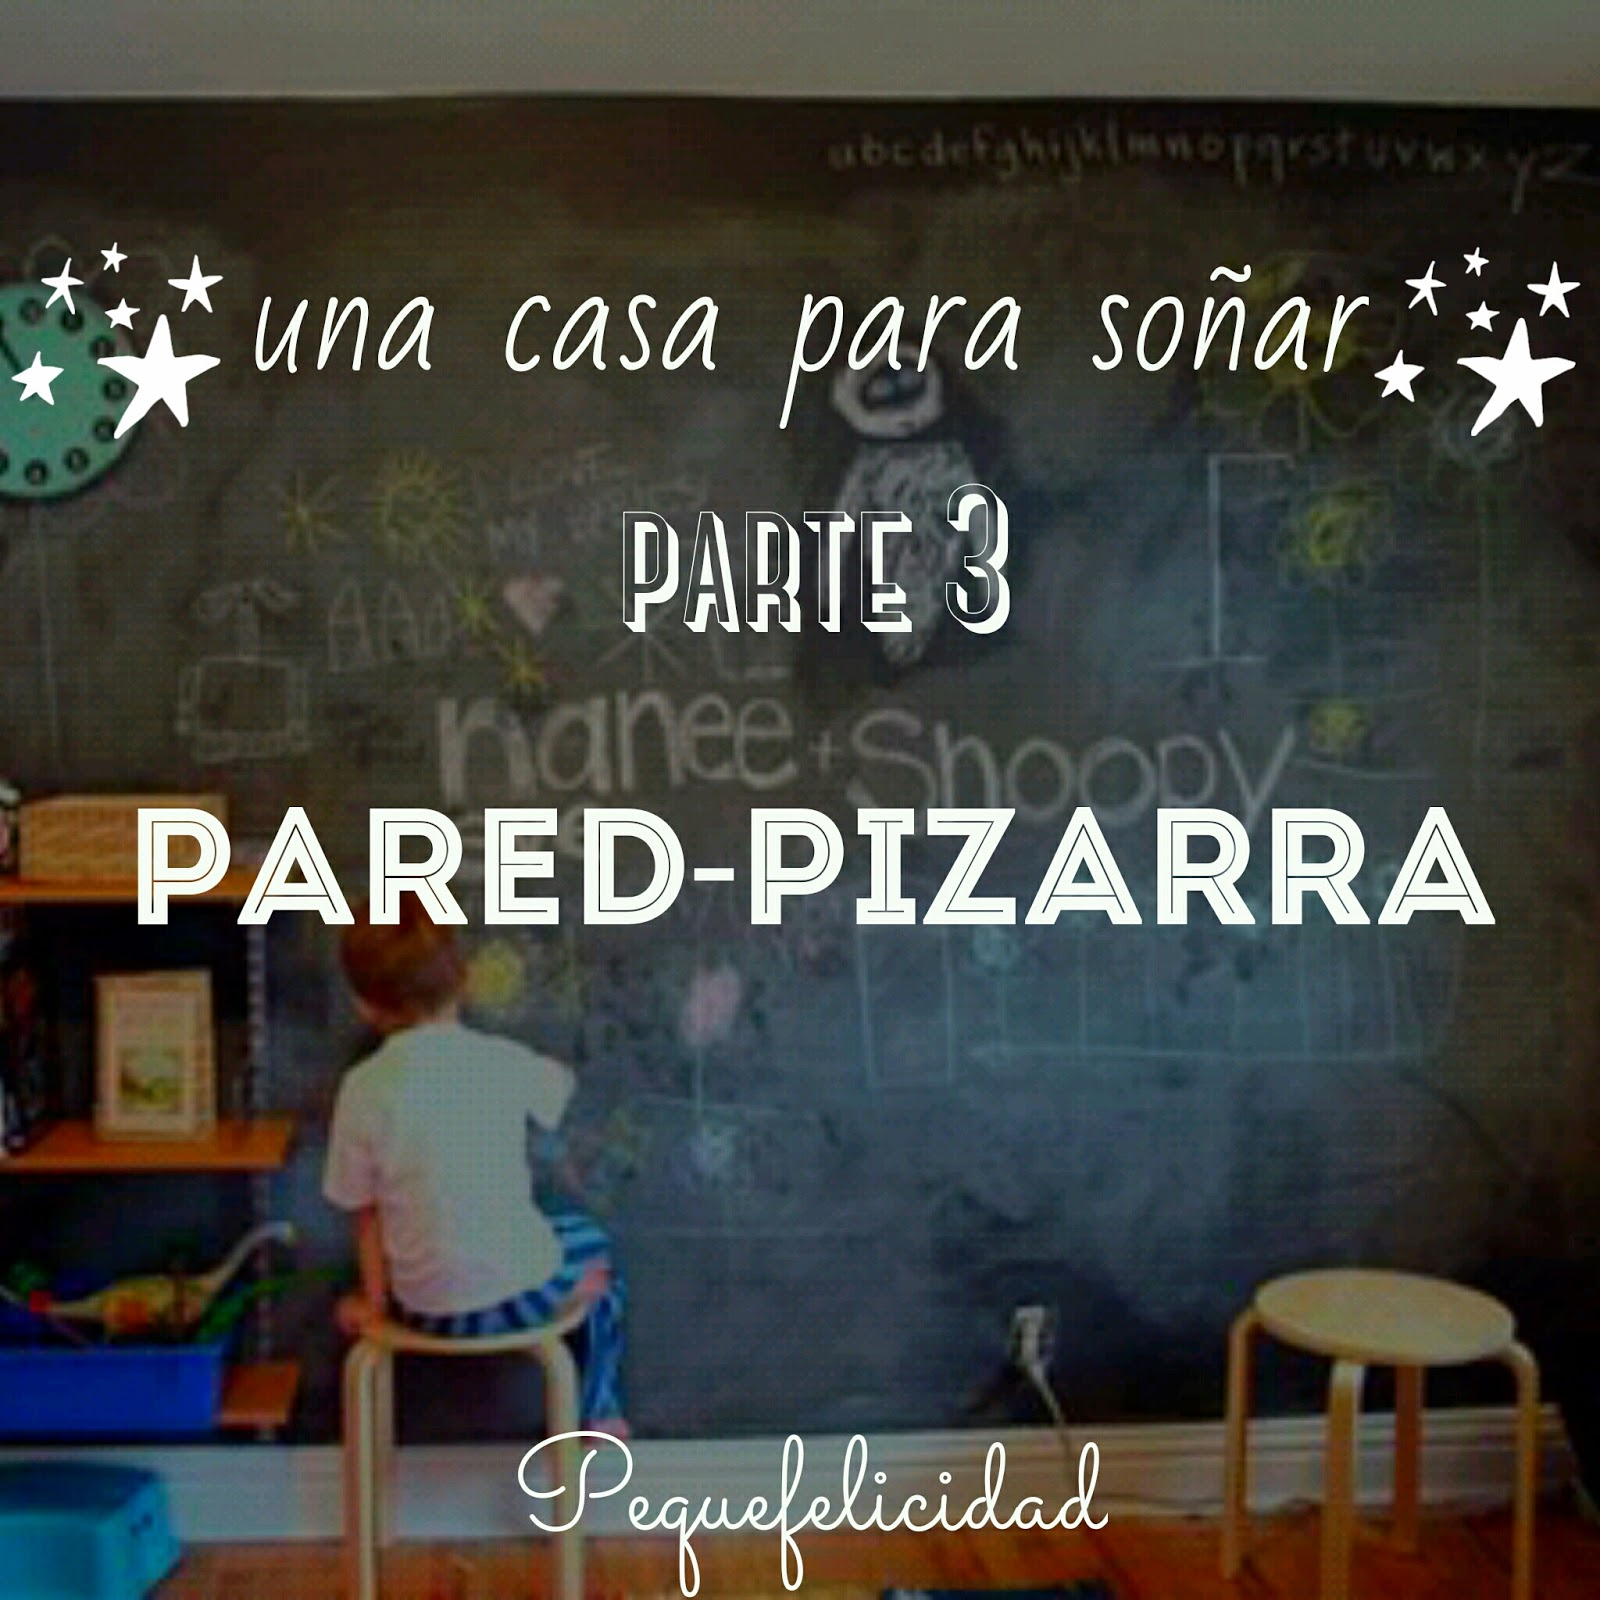 paredes pizarra - Pared De Pizarra